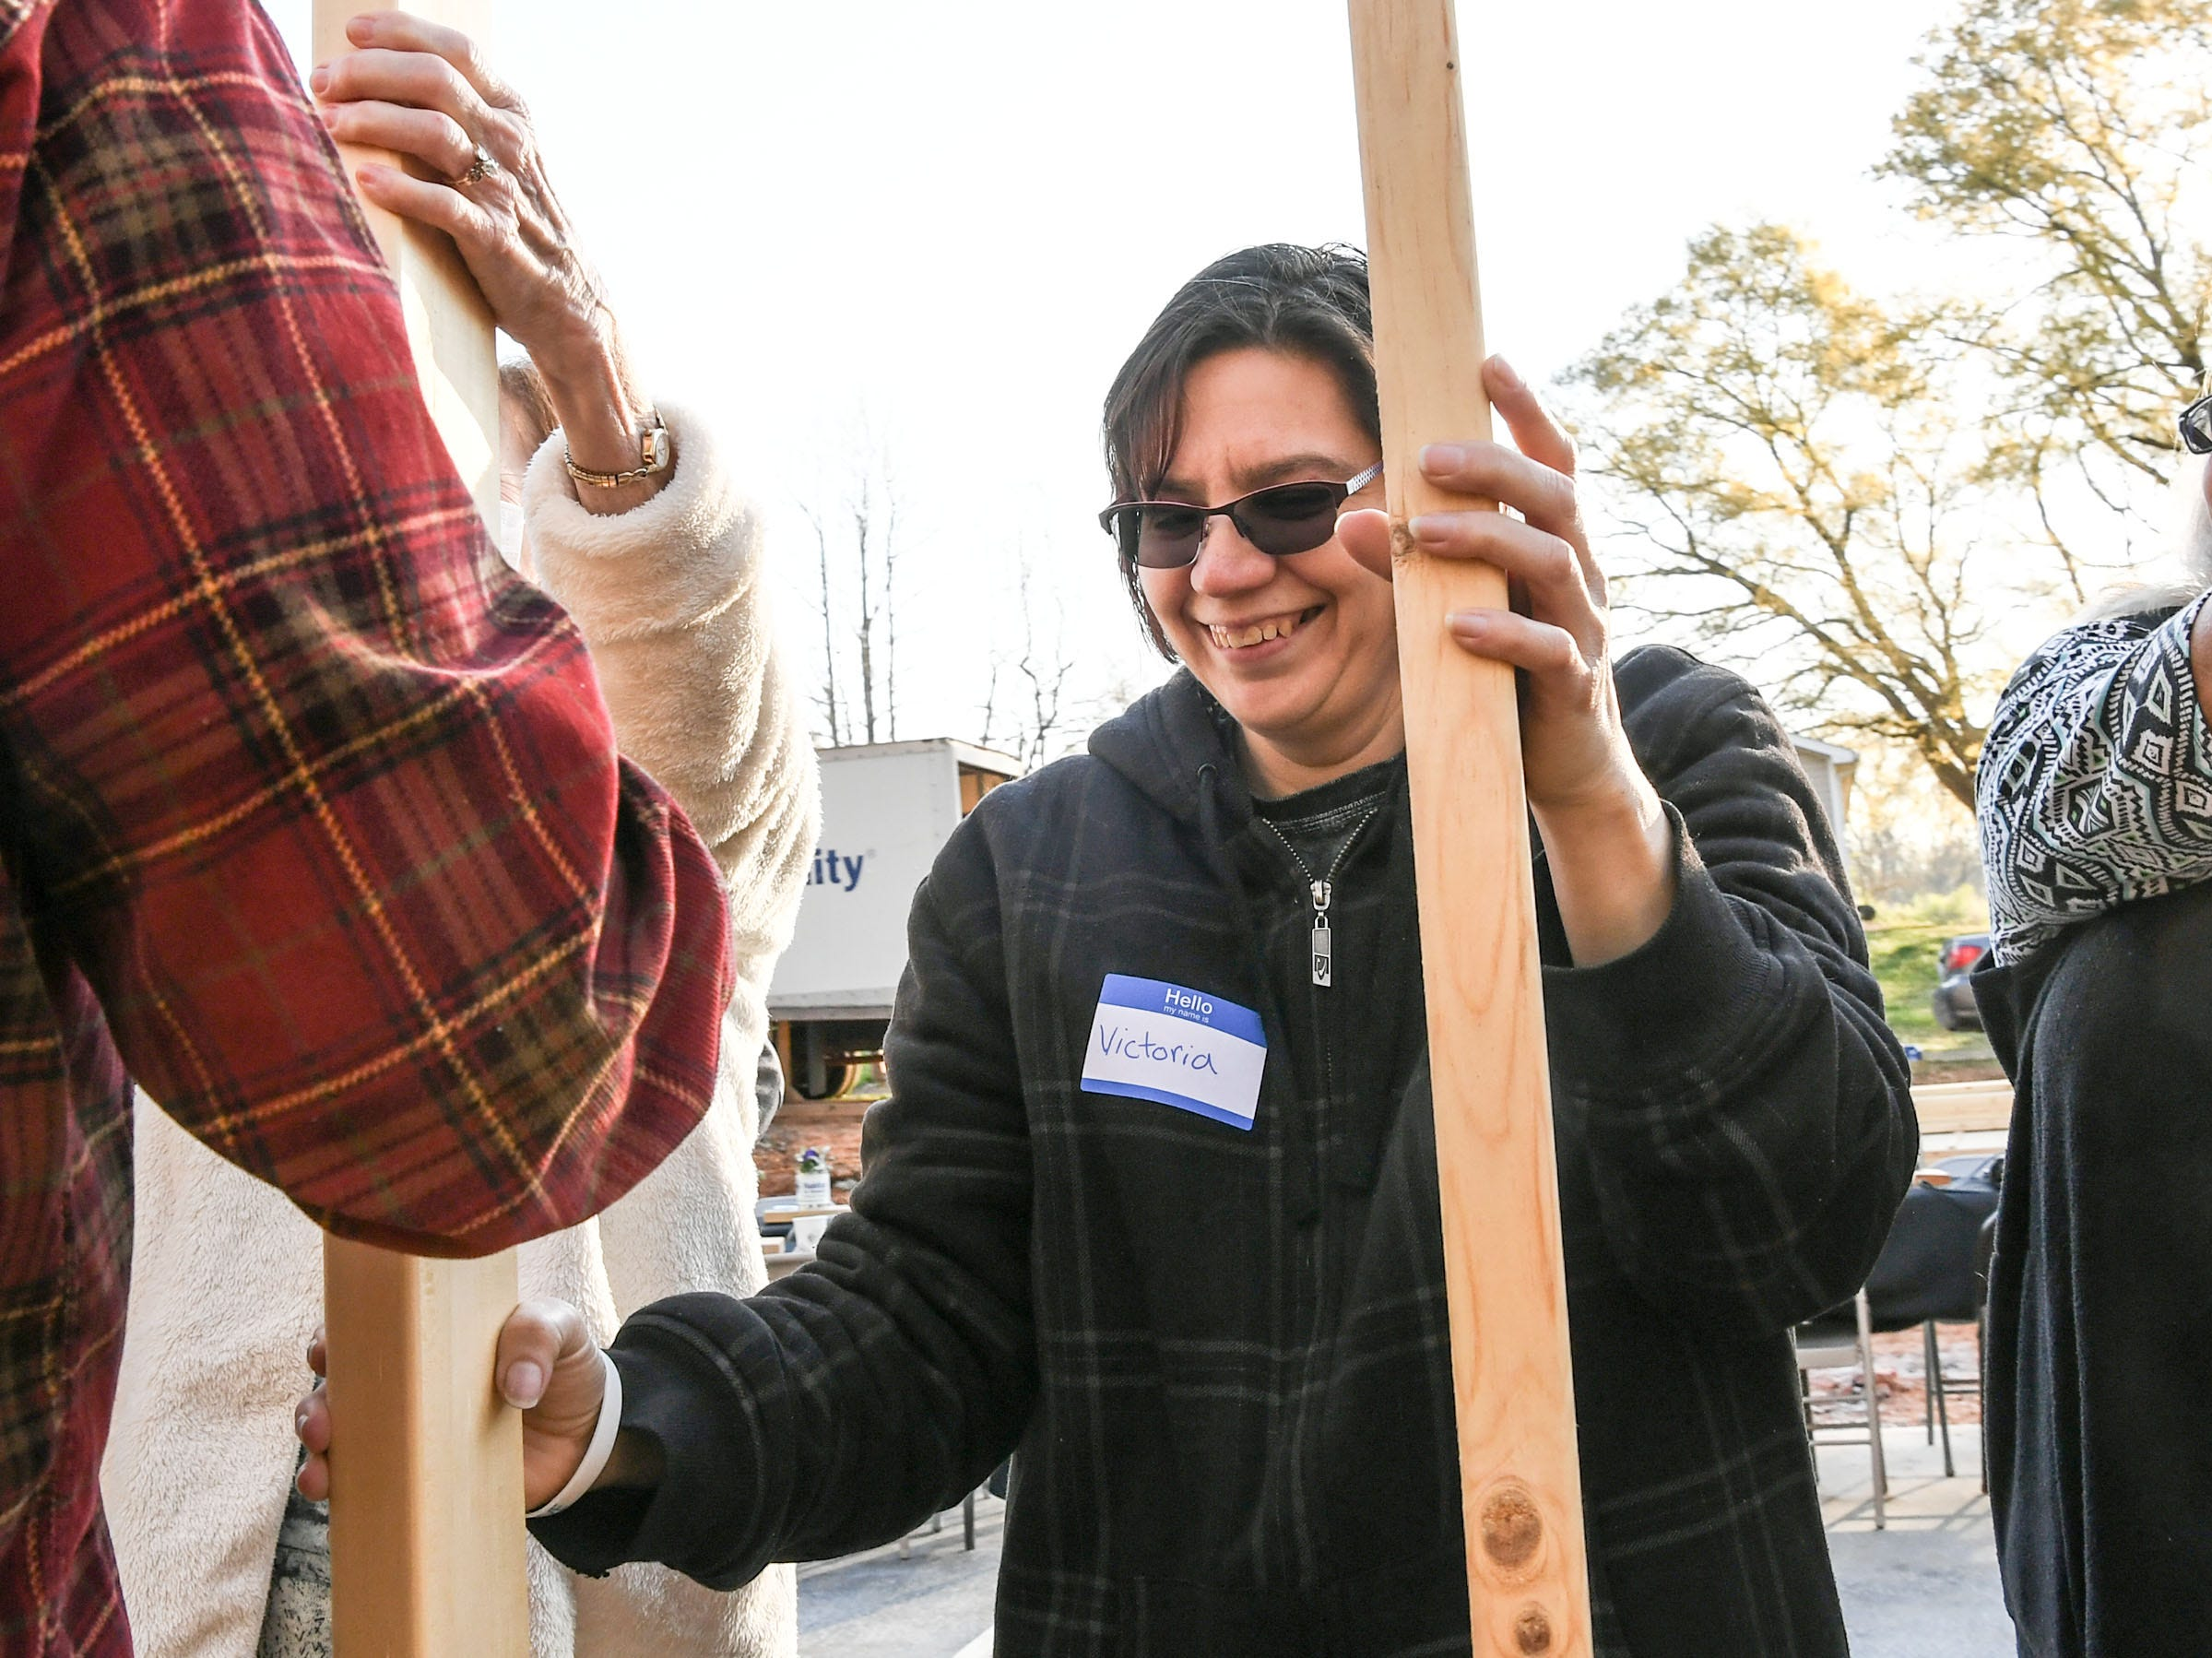 New homeowner recipient Victoria Santos smiles after helping raise a wall for her future home at a Habitat for Humanity of Anderson County home build in Anderson Thursday. The home is the eighth on Melrose Place in Anderson since Clemson football players, including Deshaun Watson, helped built the first in the fall of 2015.